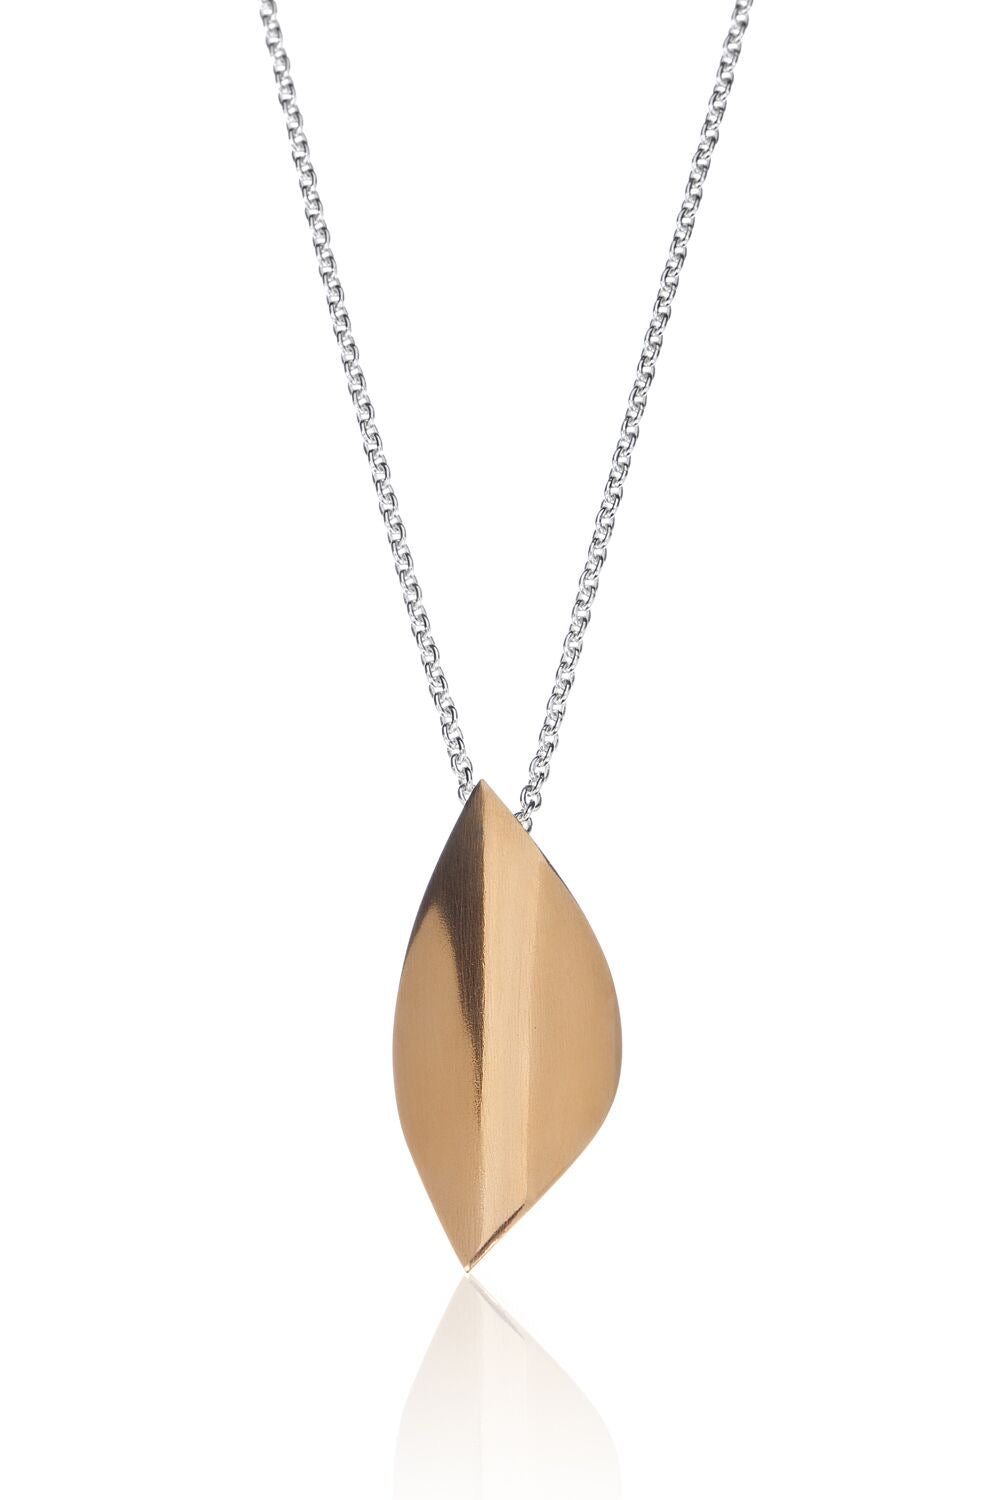 BAKKA - Bare Leaves Necklace Necklaces - Norwegian Jewelry features artisan jewellery designers and goldsmiths from Norway.